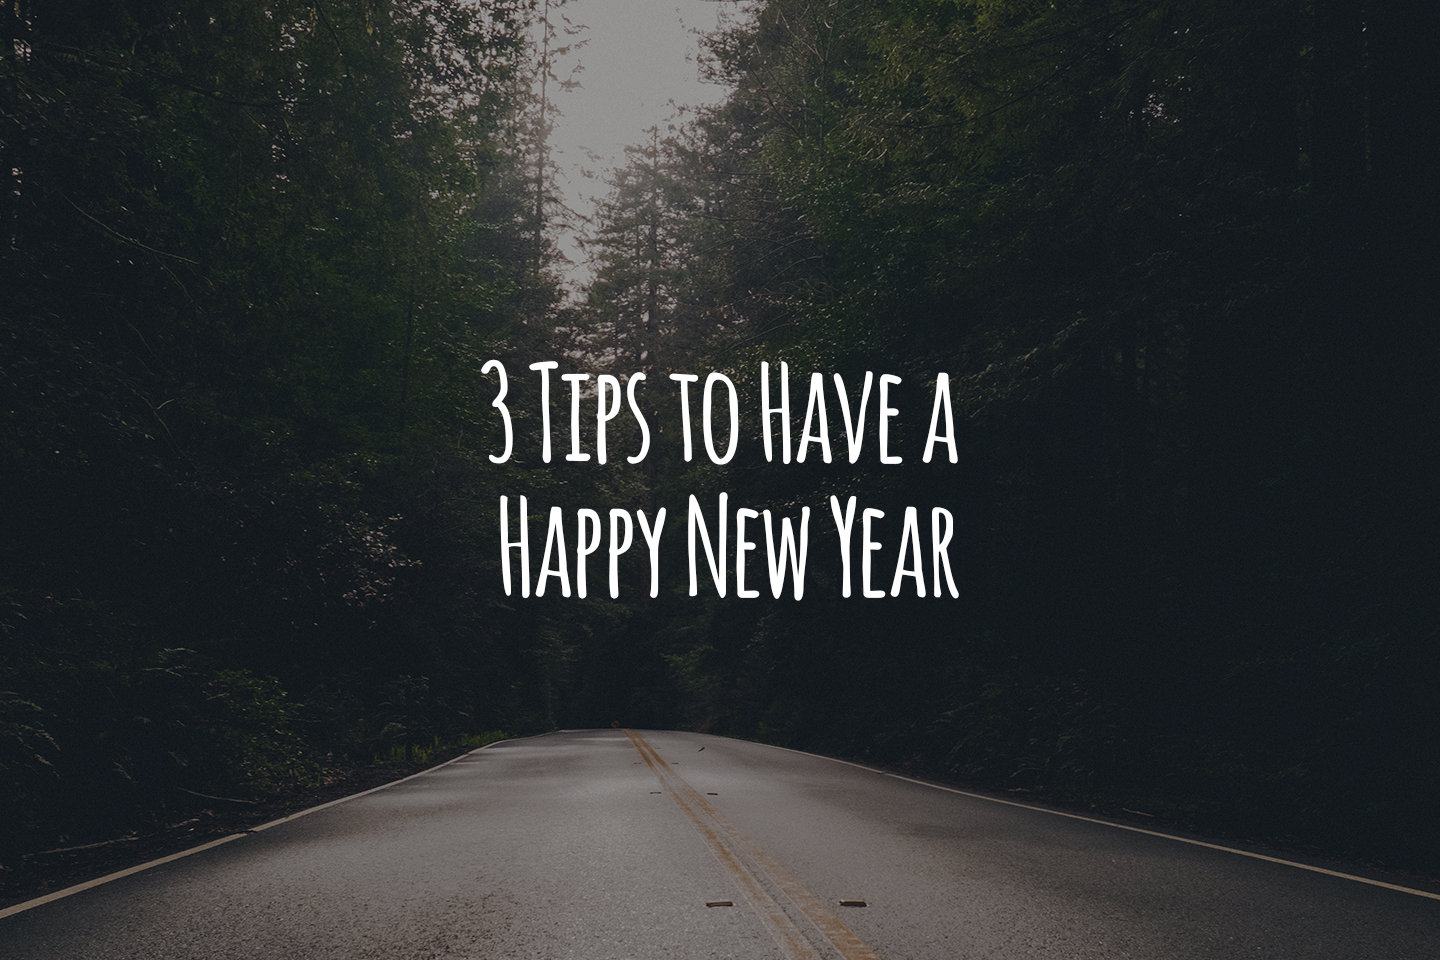 3 Tips to Have a Happy New Year